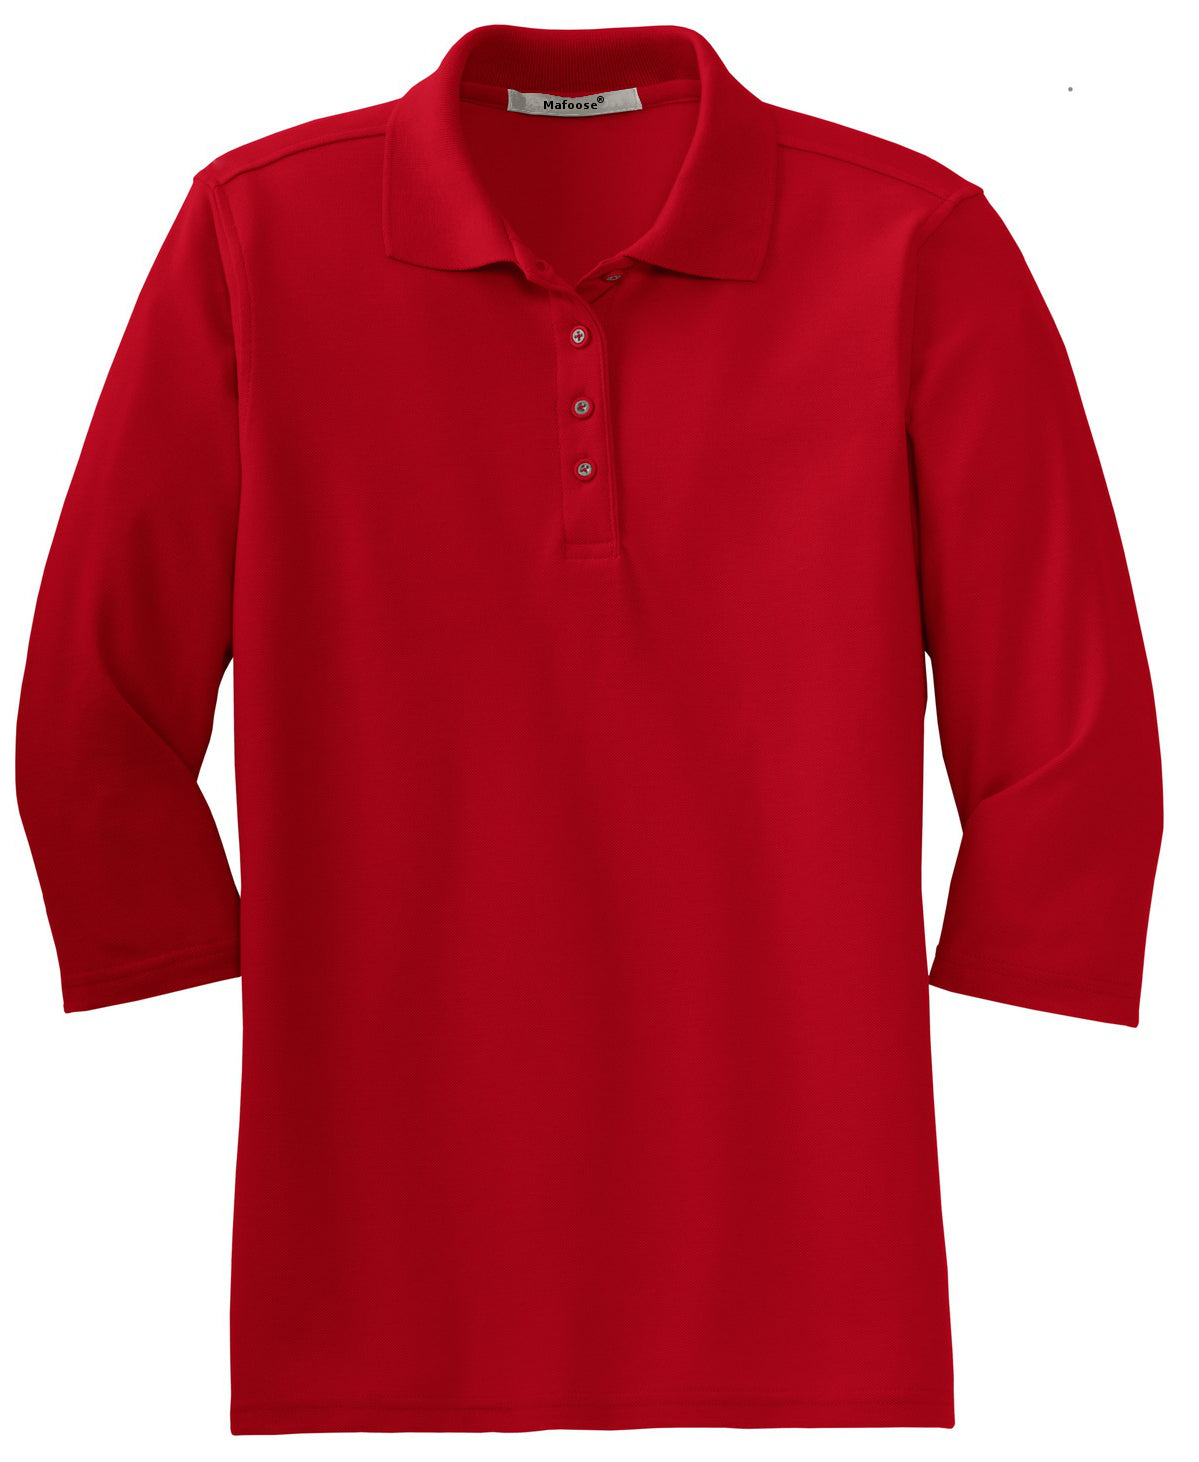 Mafoose Women's Silk Touch ¾ Sleeve Polo Shirt Red-Front